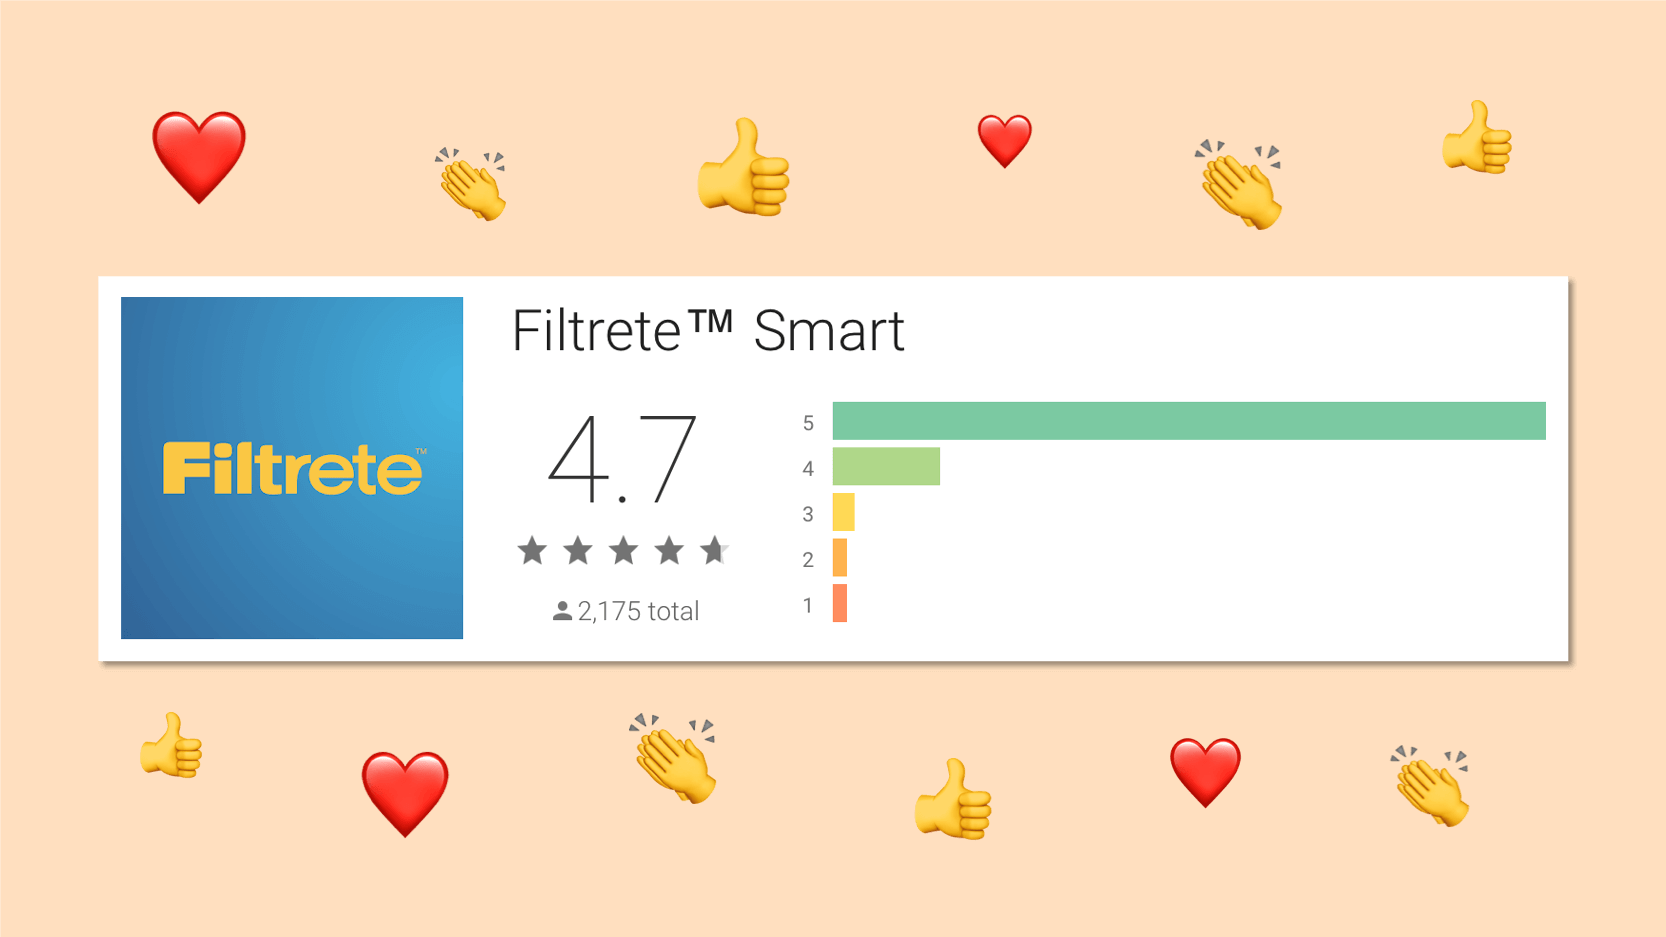 3M Filtrete Android App Ratings after Google Play In-App Review API